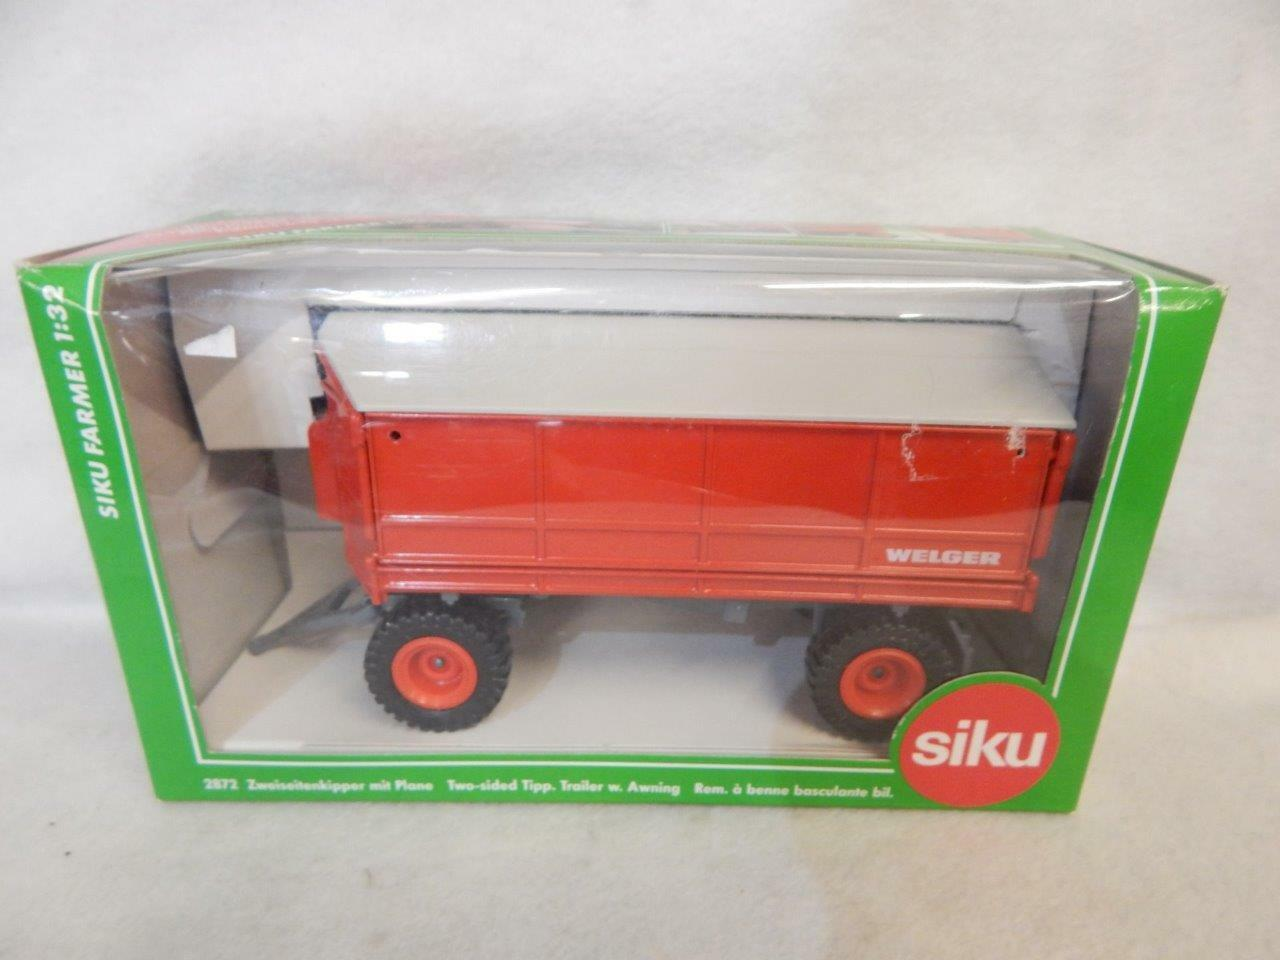 SIKU FARMER WELGER TWO SIDED TIPPING TRAILER WITH AWNING 2872 MIB 1 32